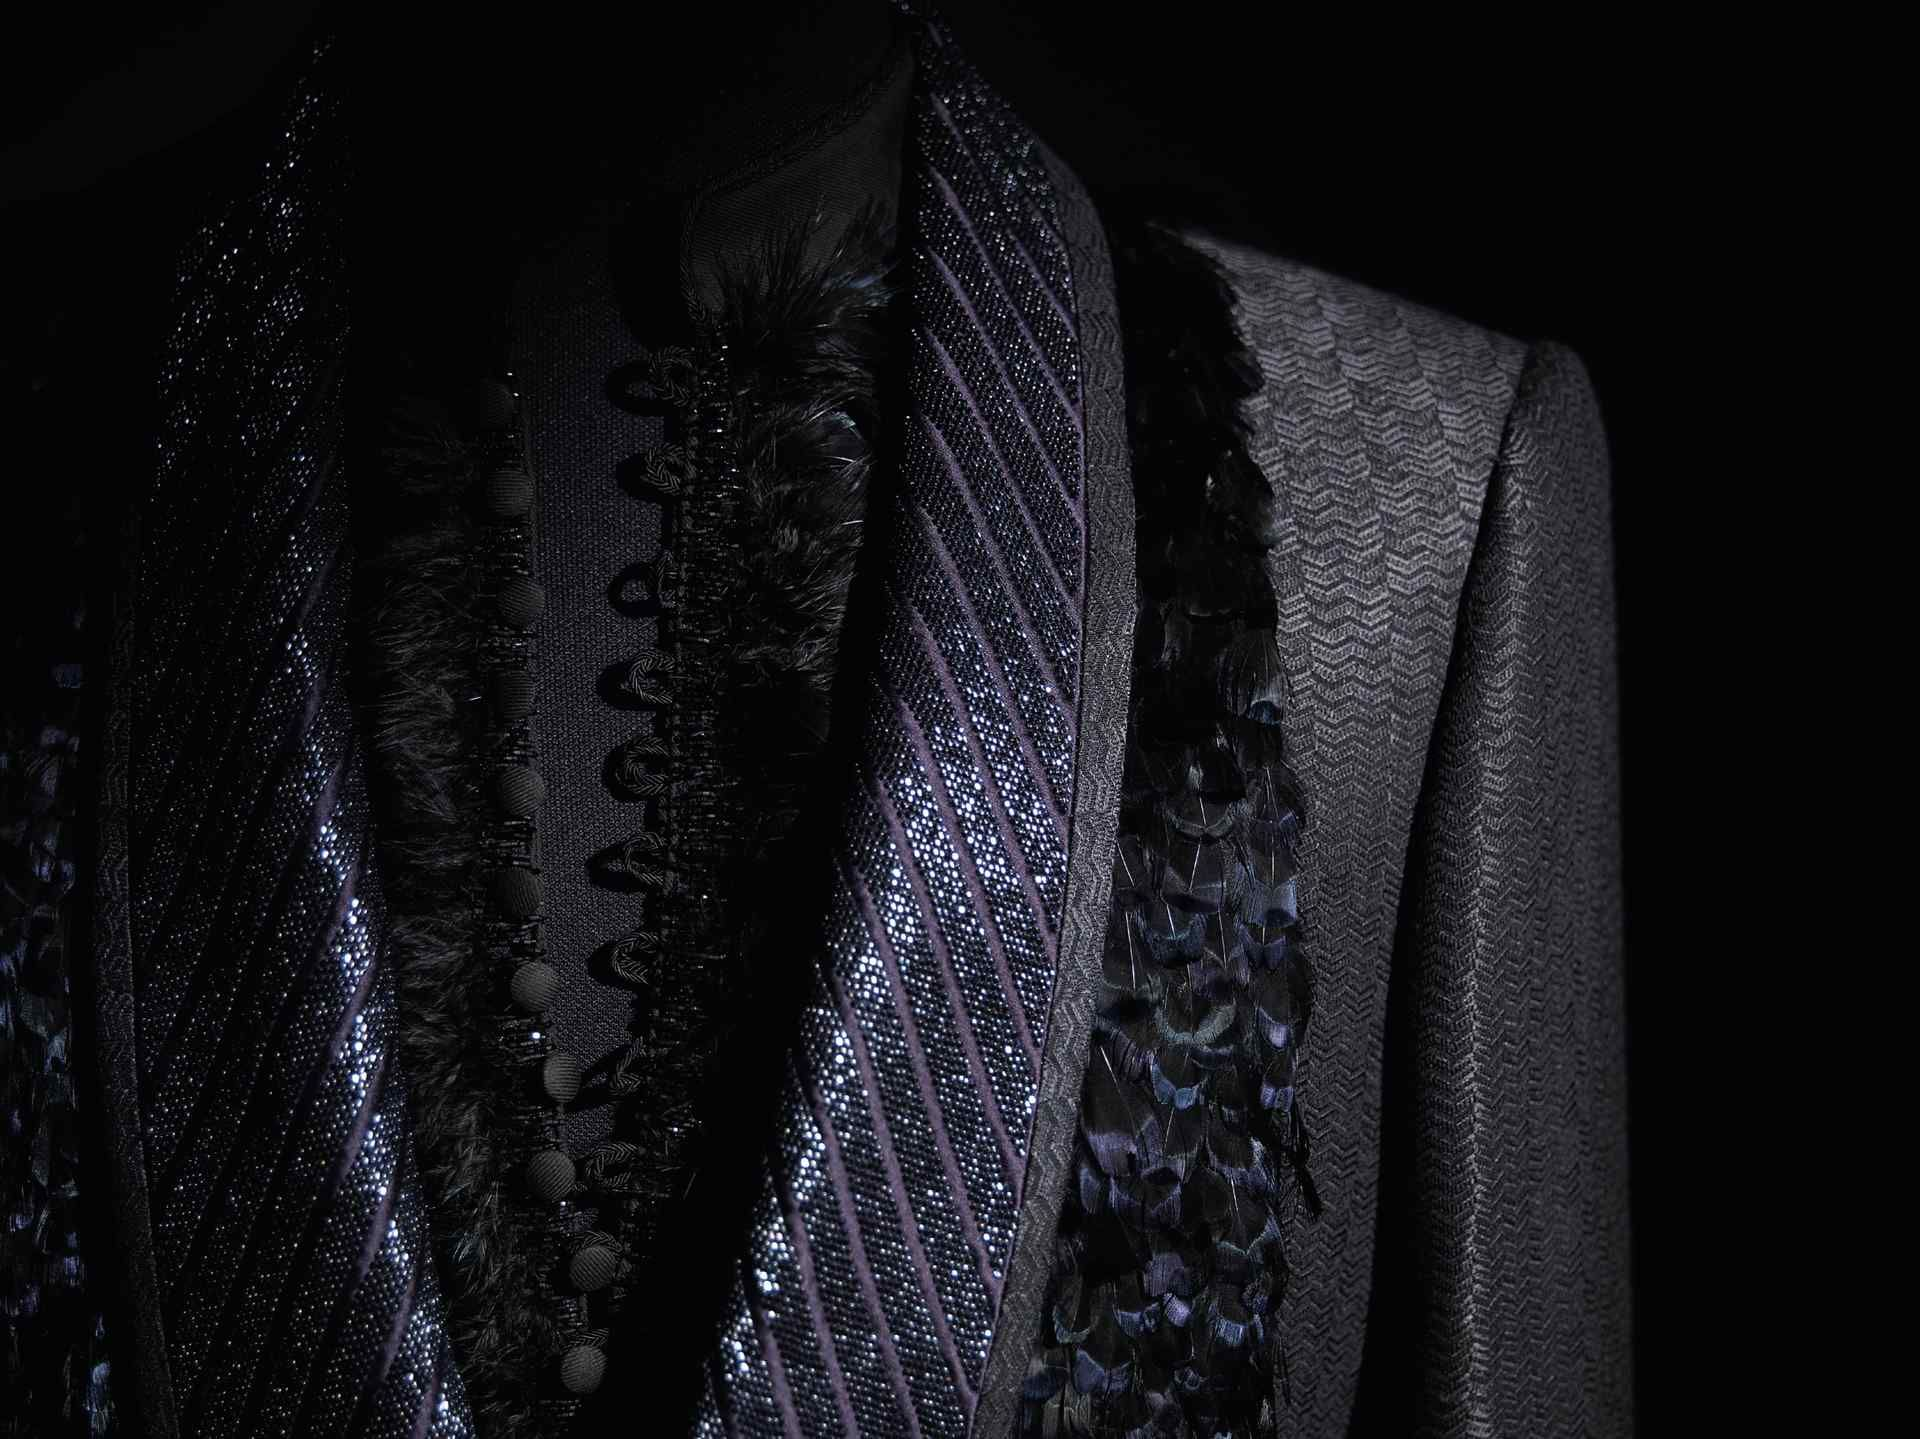 #RobertoCavalli Menswear FW 2012-13 collection